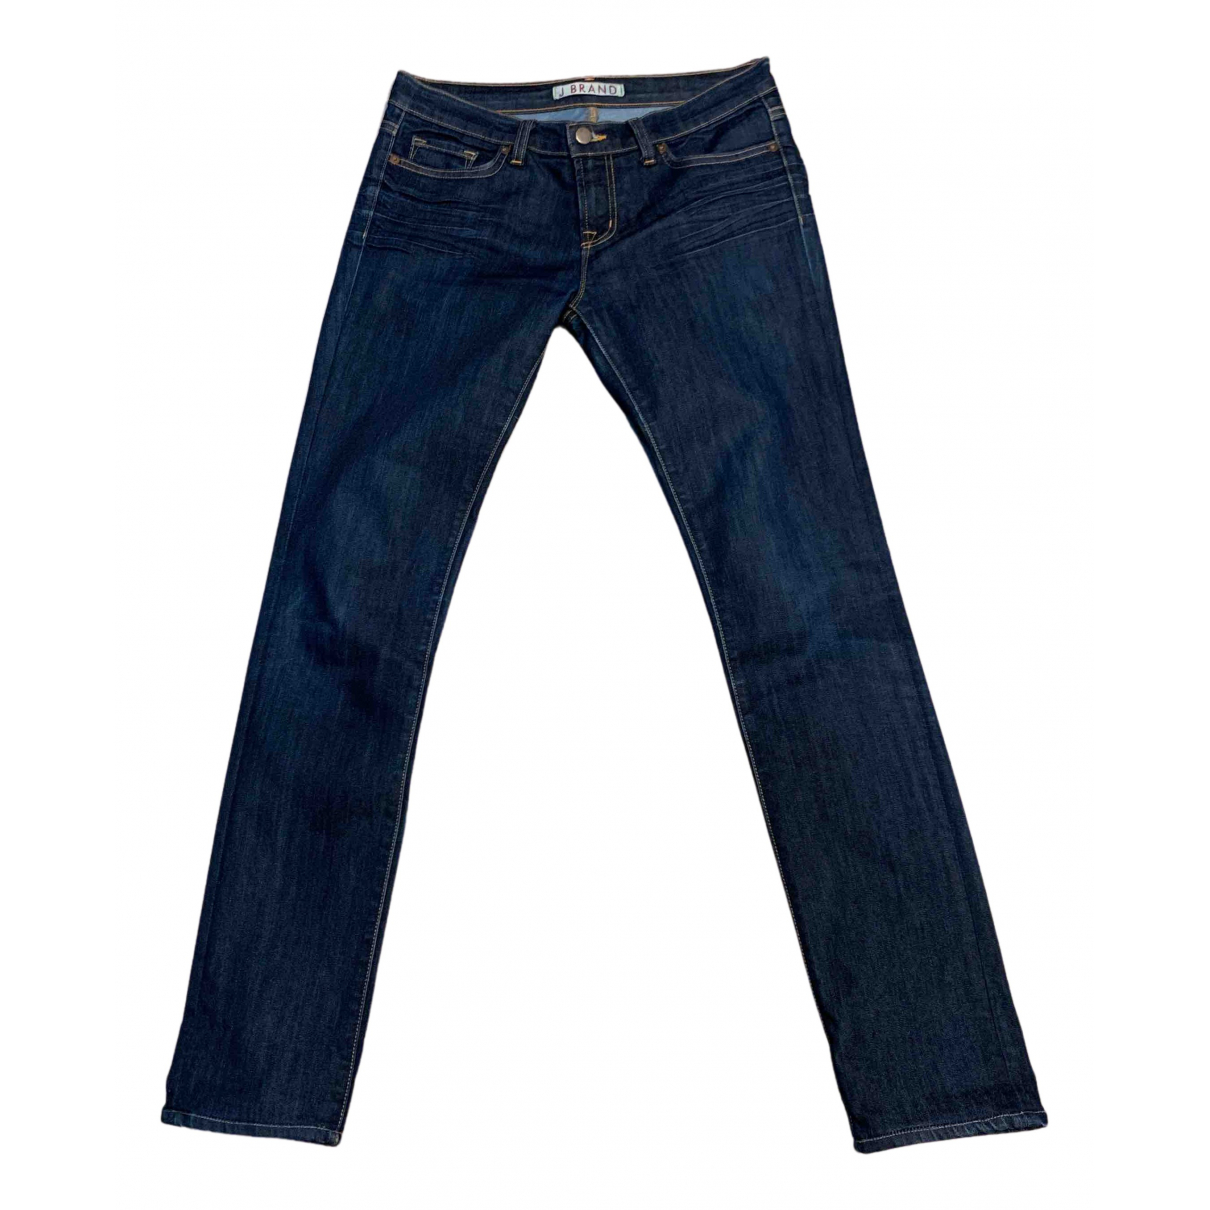 J Brand N Blue Cotton Jeans for Women 29 US